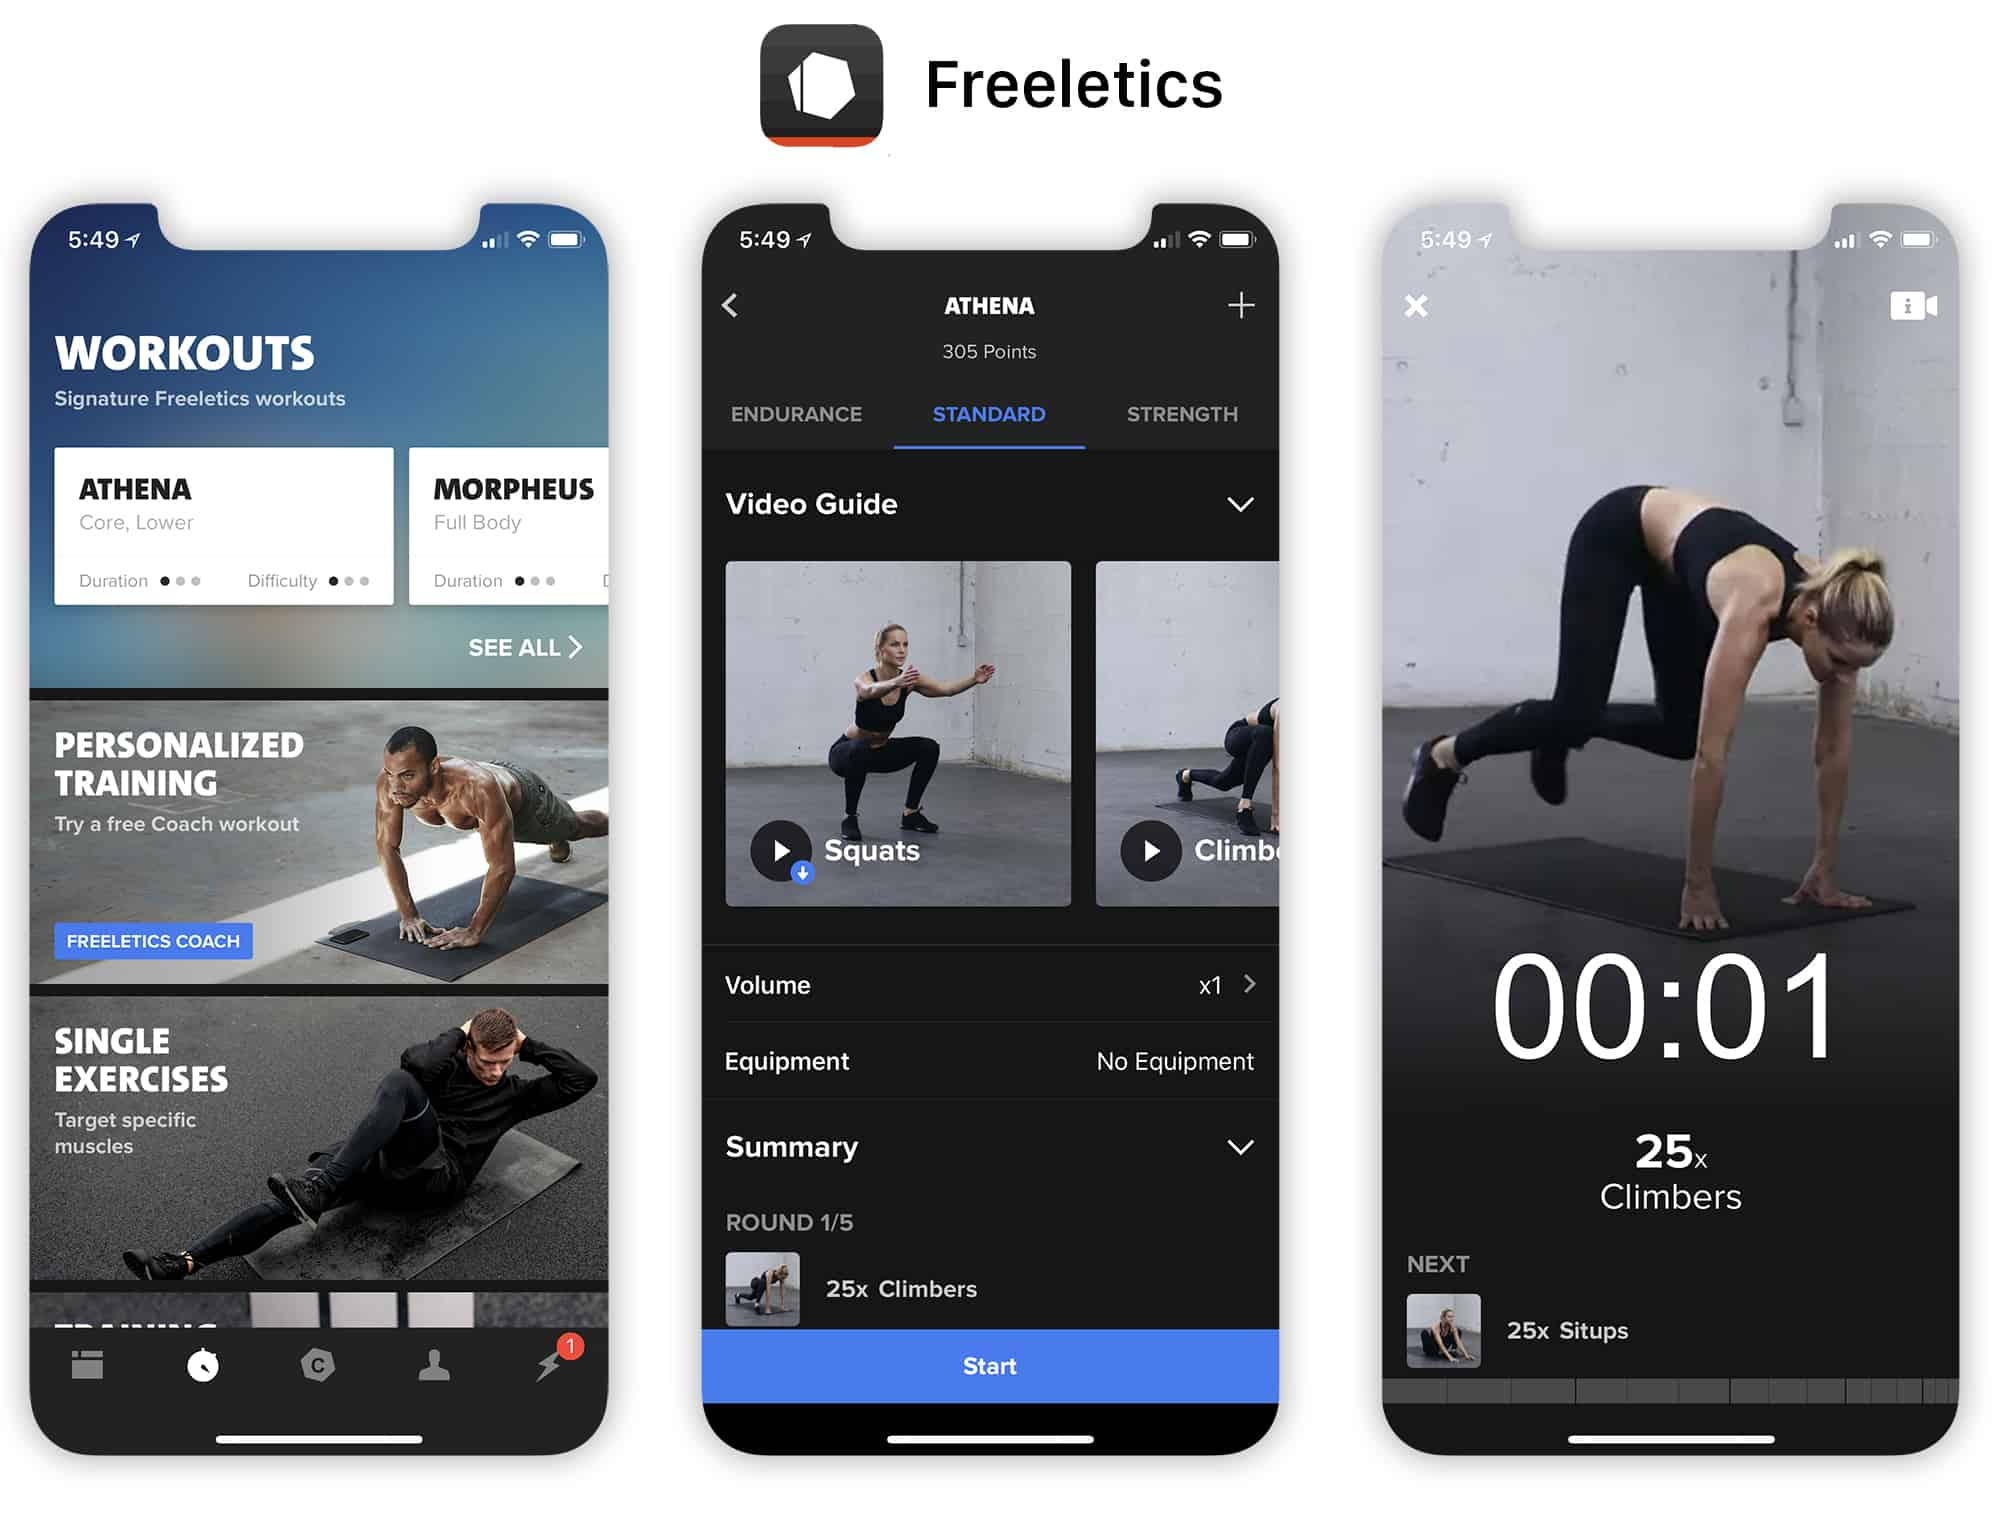 Freeletics offers two apps, one for bodyweight exercises and the other for free weights